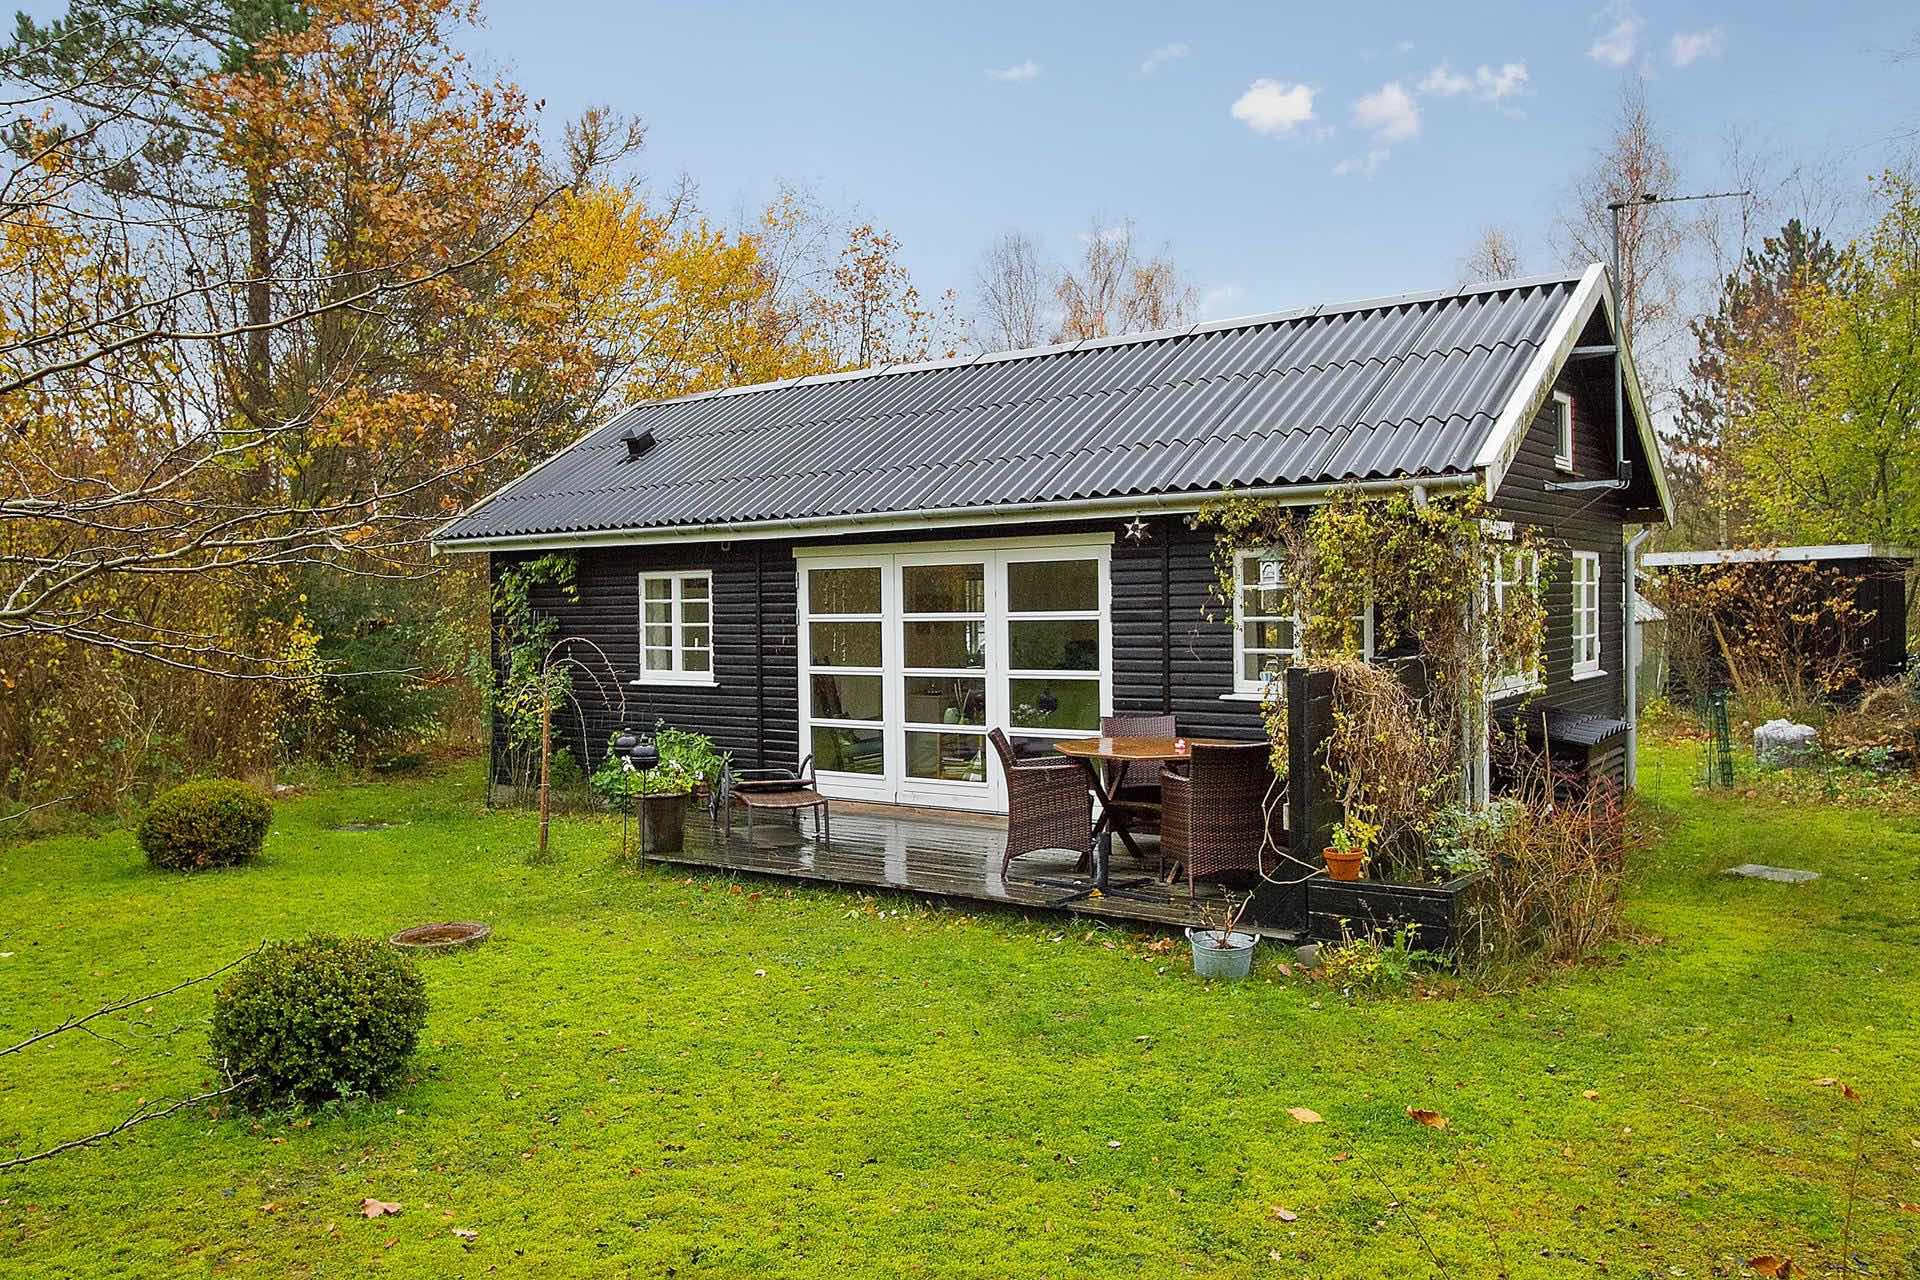 1000  images about Small Houses on Pinterest